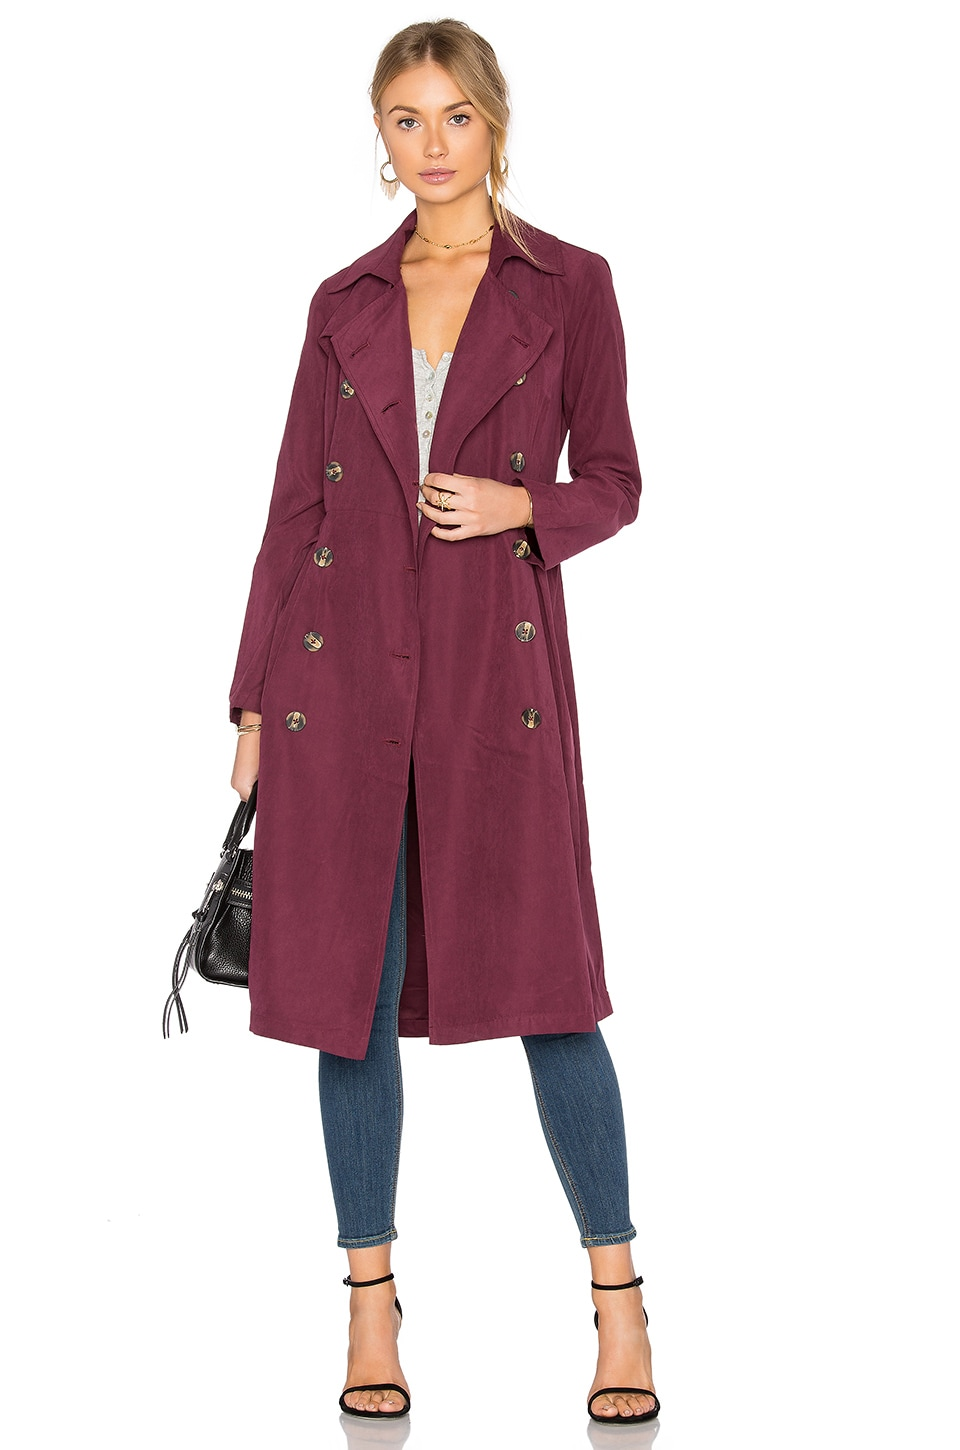 BB Dakota Jack By BB Dakota Wellington Coat in Dark Plum